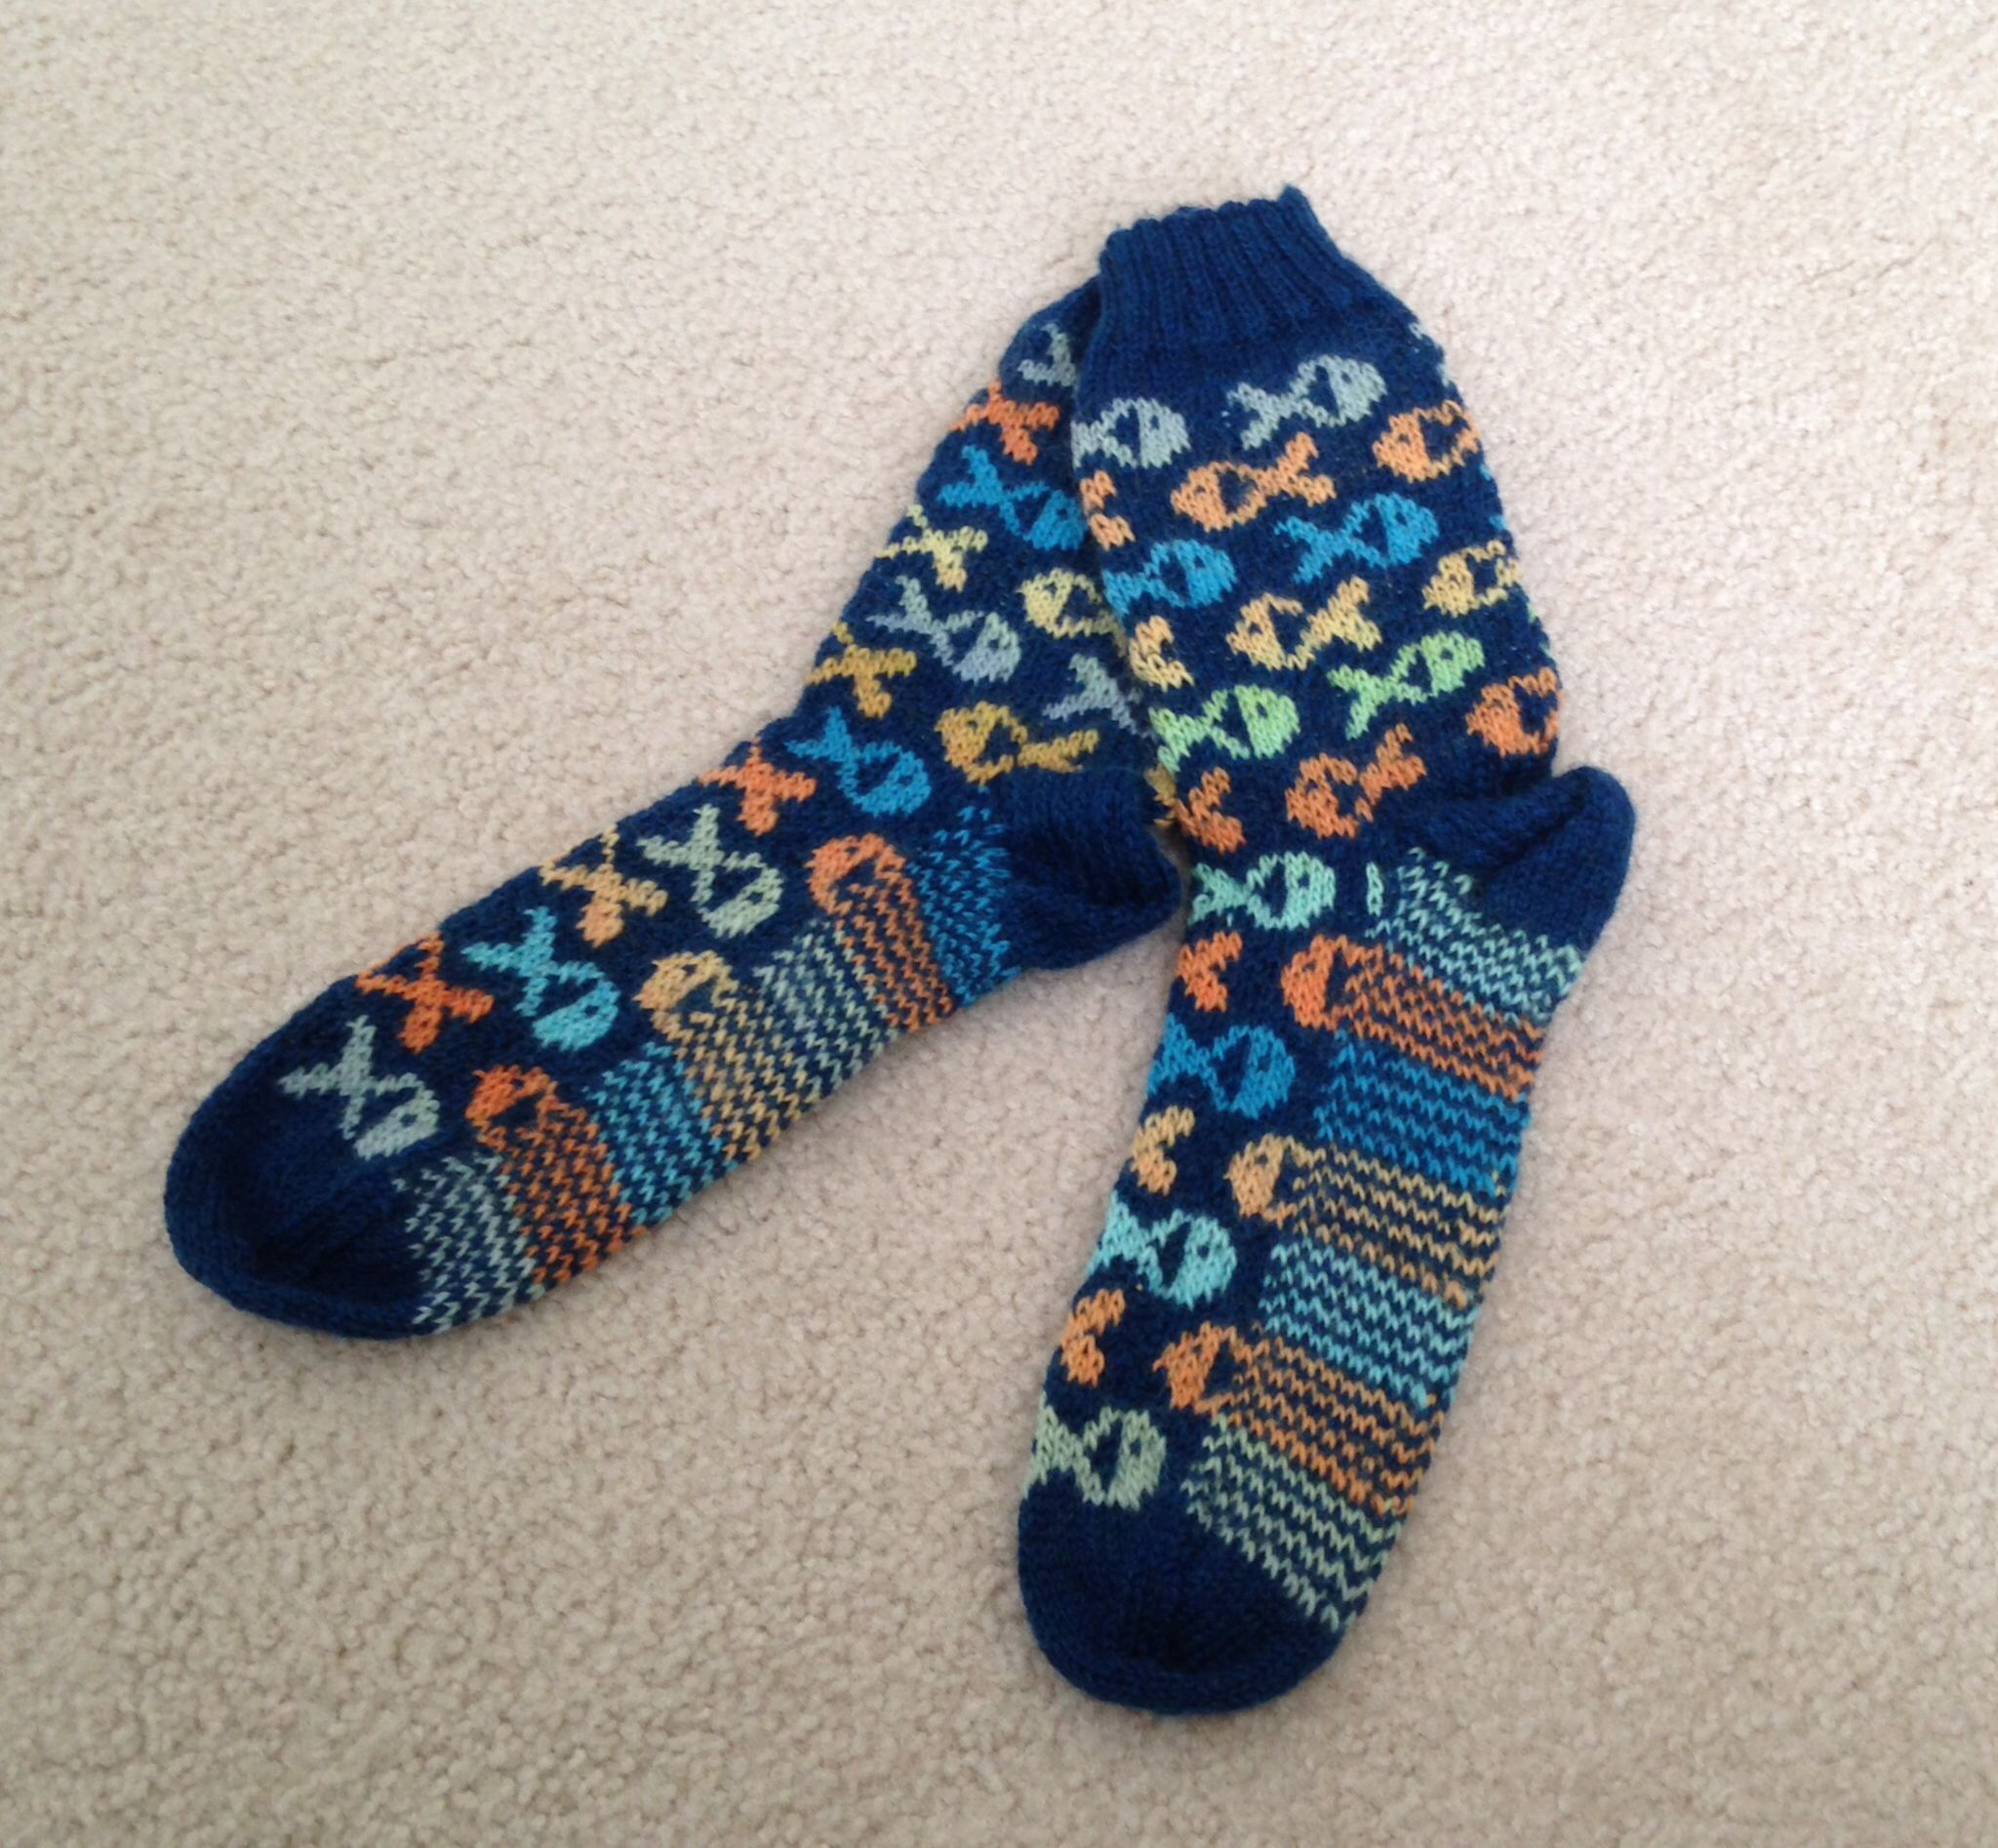 A better pic of my adorable FISH SOCKS!